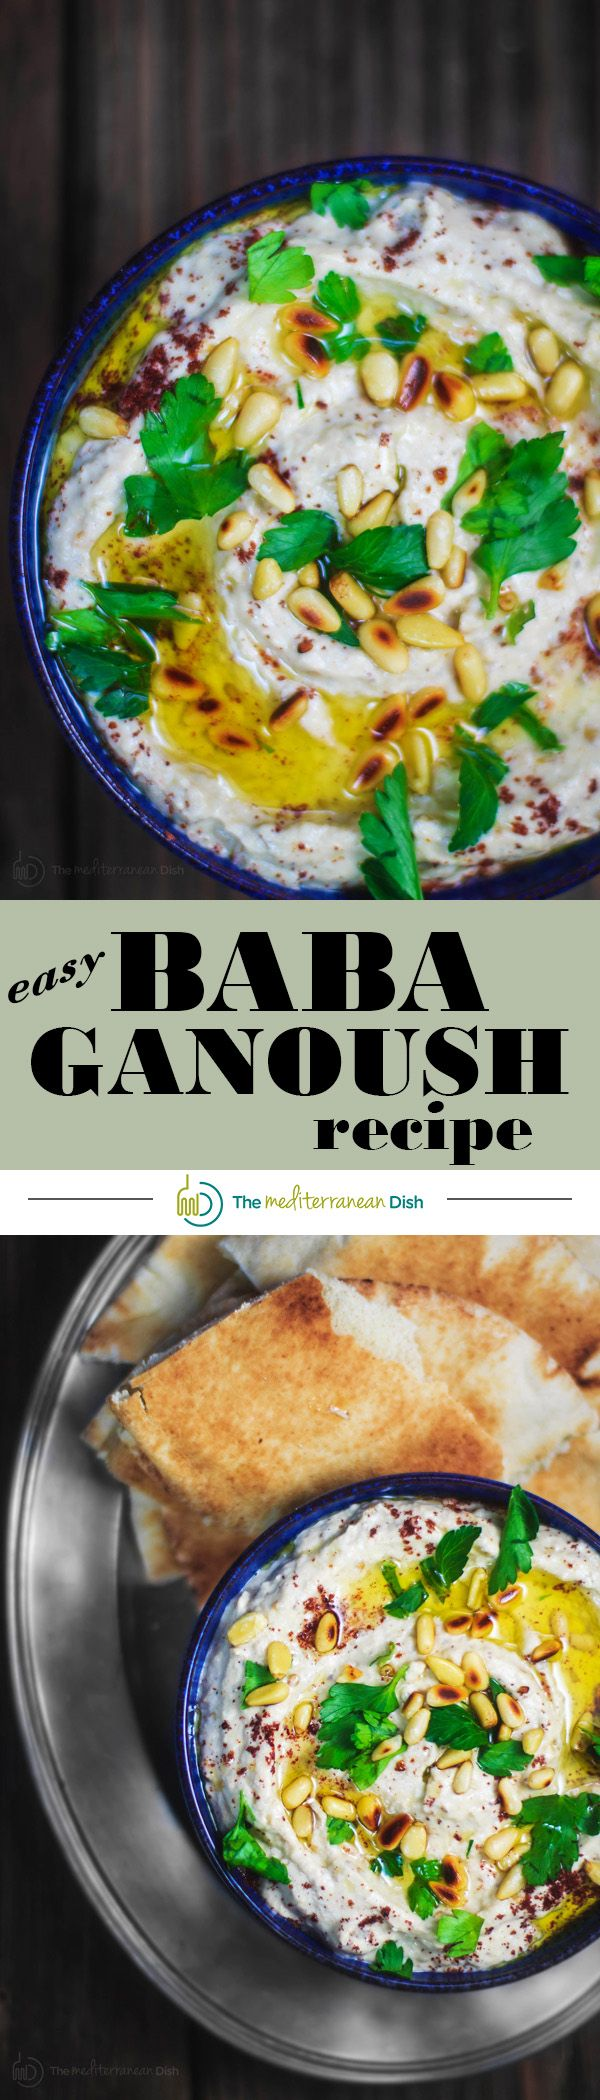 Easy Baba Ganoush Recipe | The Mediterranean Dish. A silky, flavor-packed roasted eggplant dip with tahini, garlic and yogurt. The perfect party appetizer, snack or a spread for your sandwiches. Recipe comes with step-by-step photos!